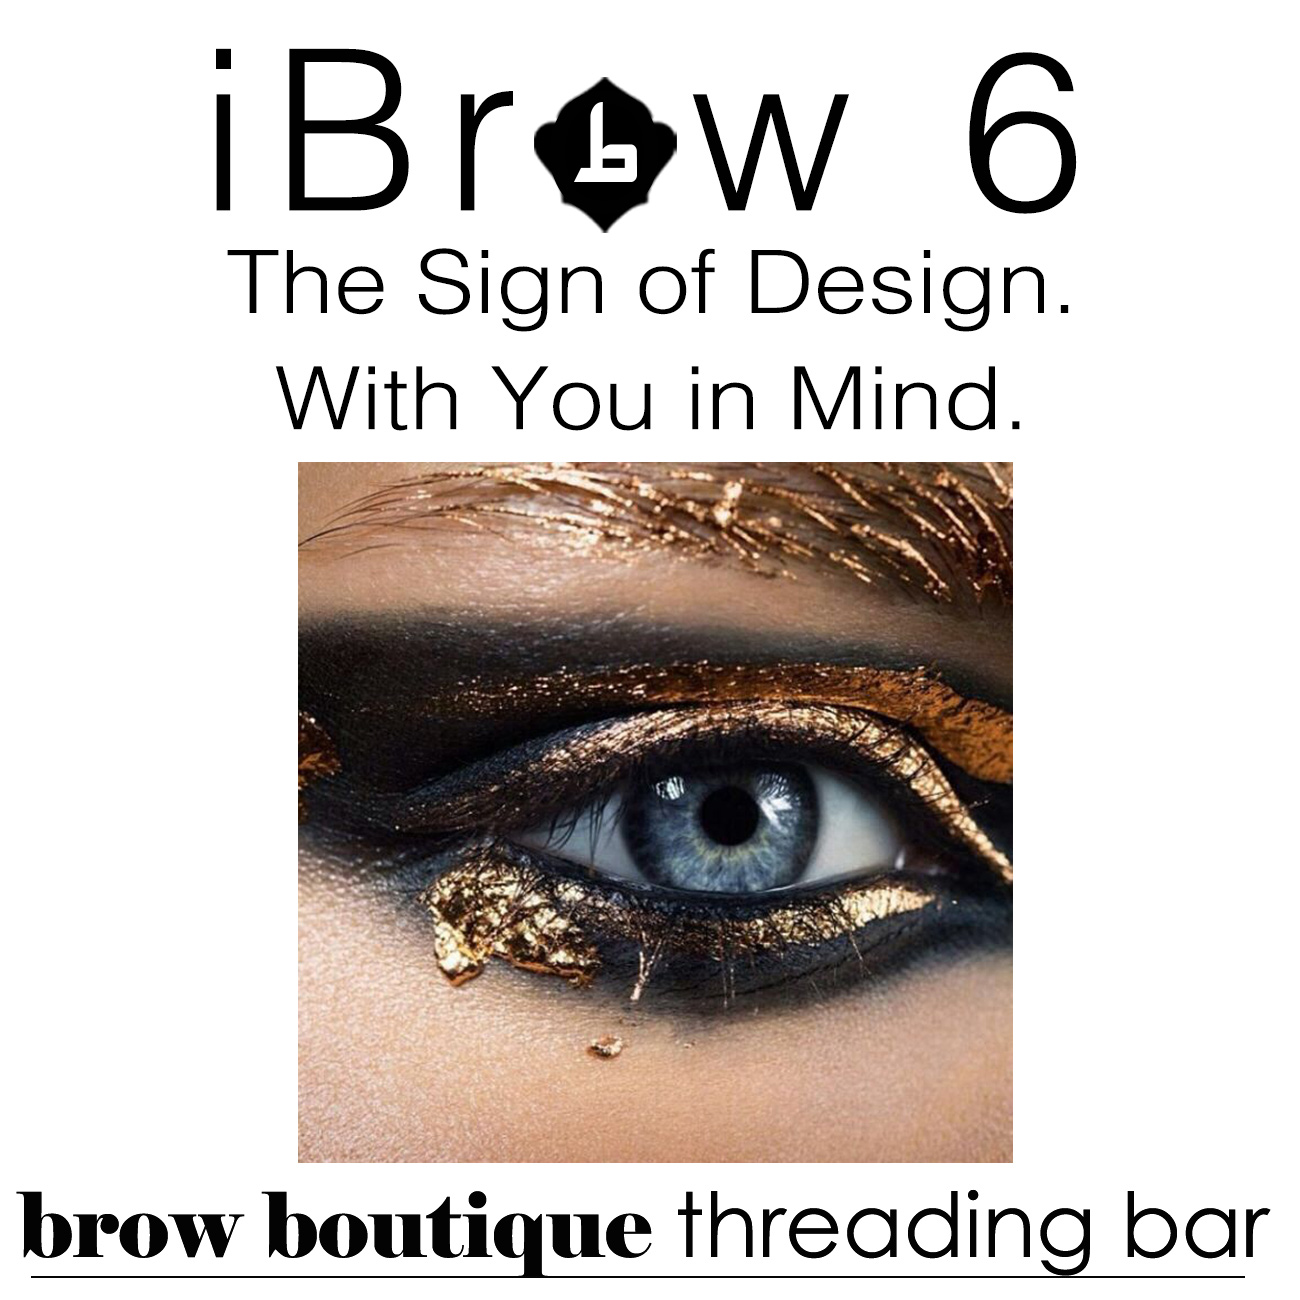 iBrow 6 brow boutique threading bar